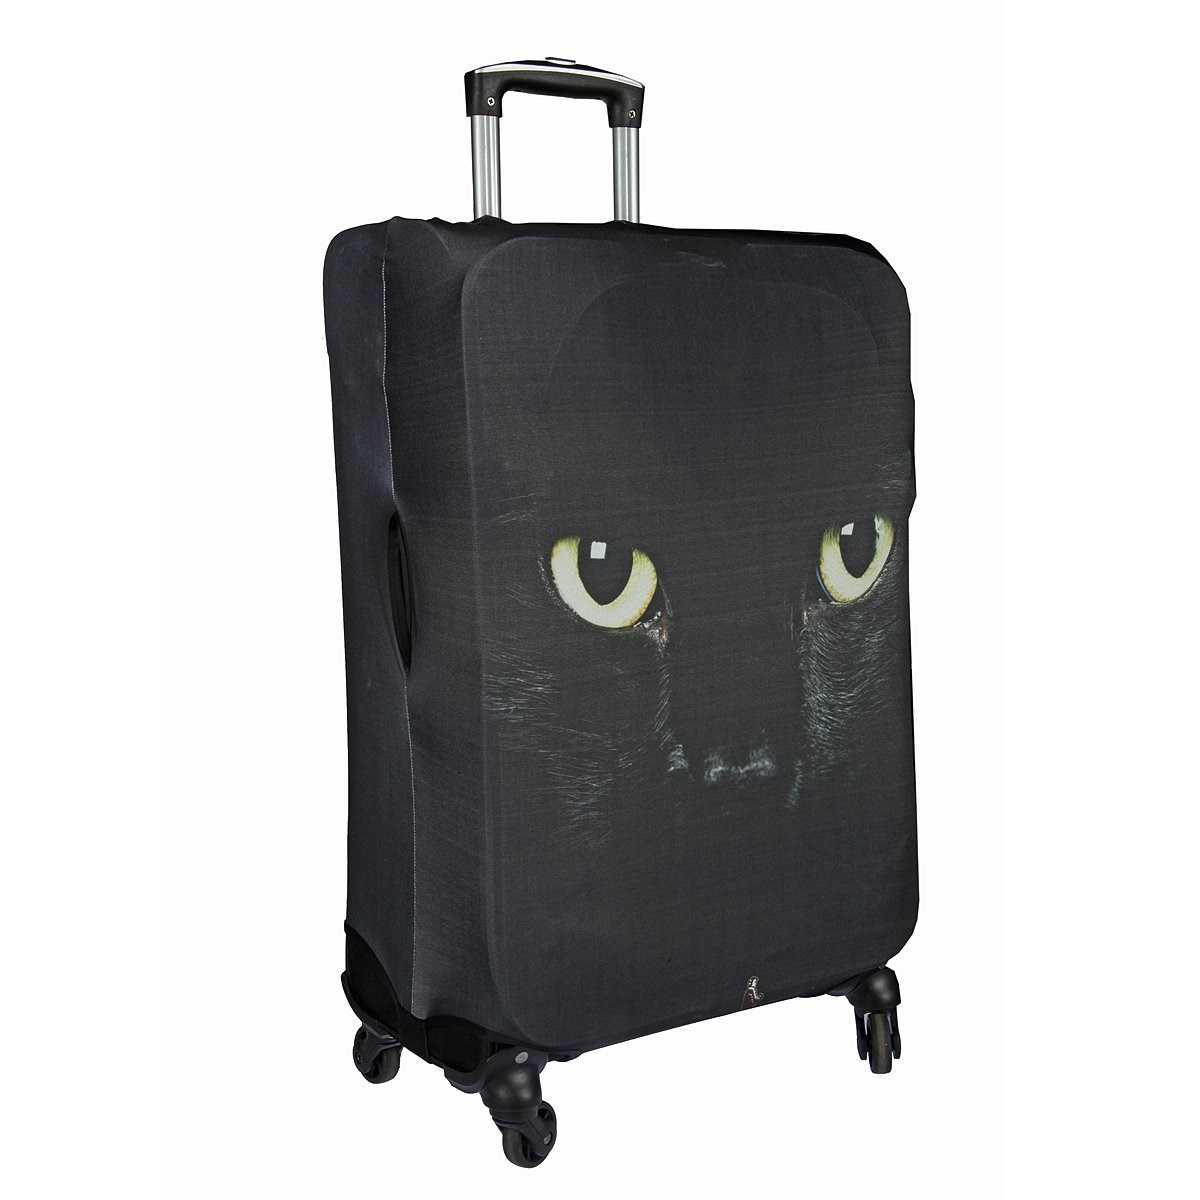 Protective cover for suitcase 9027 L